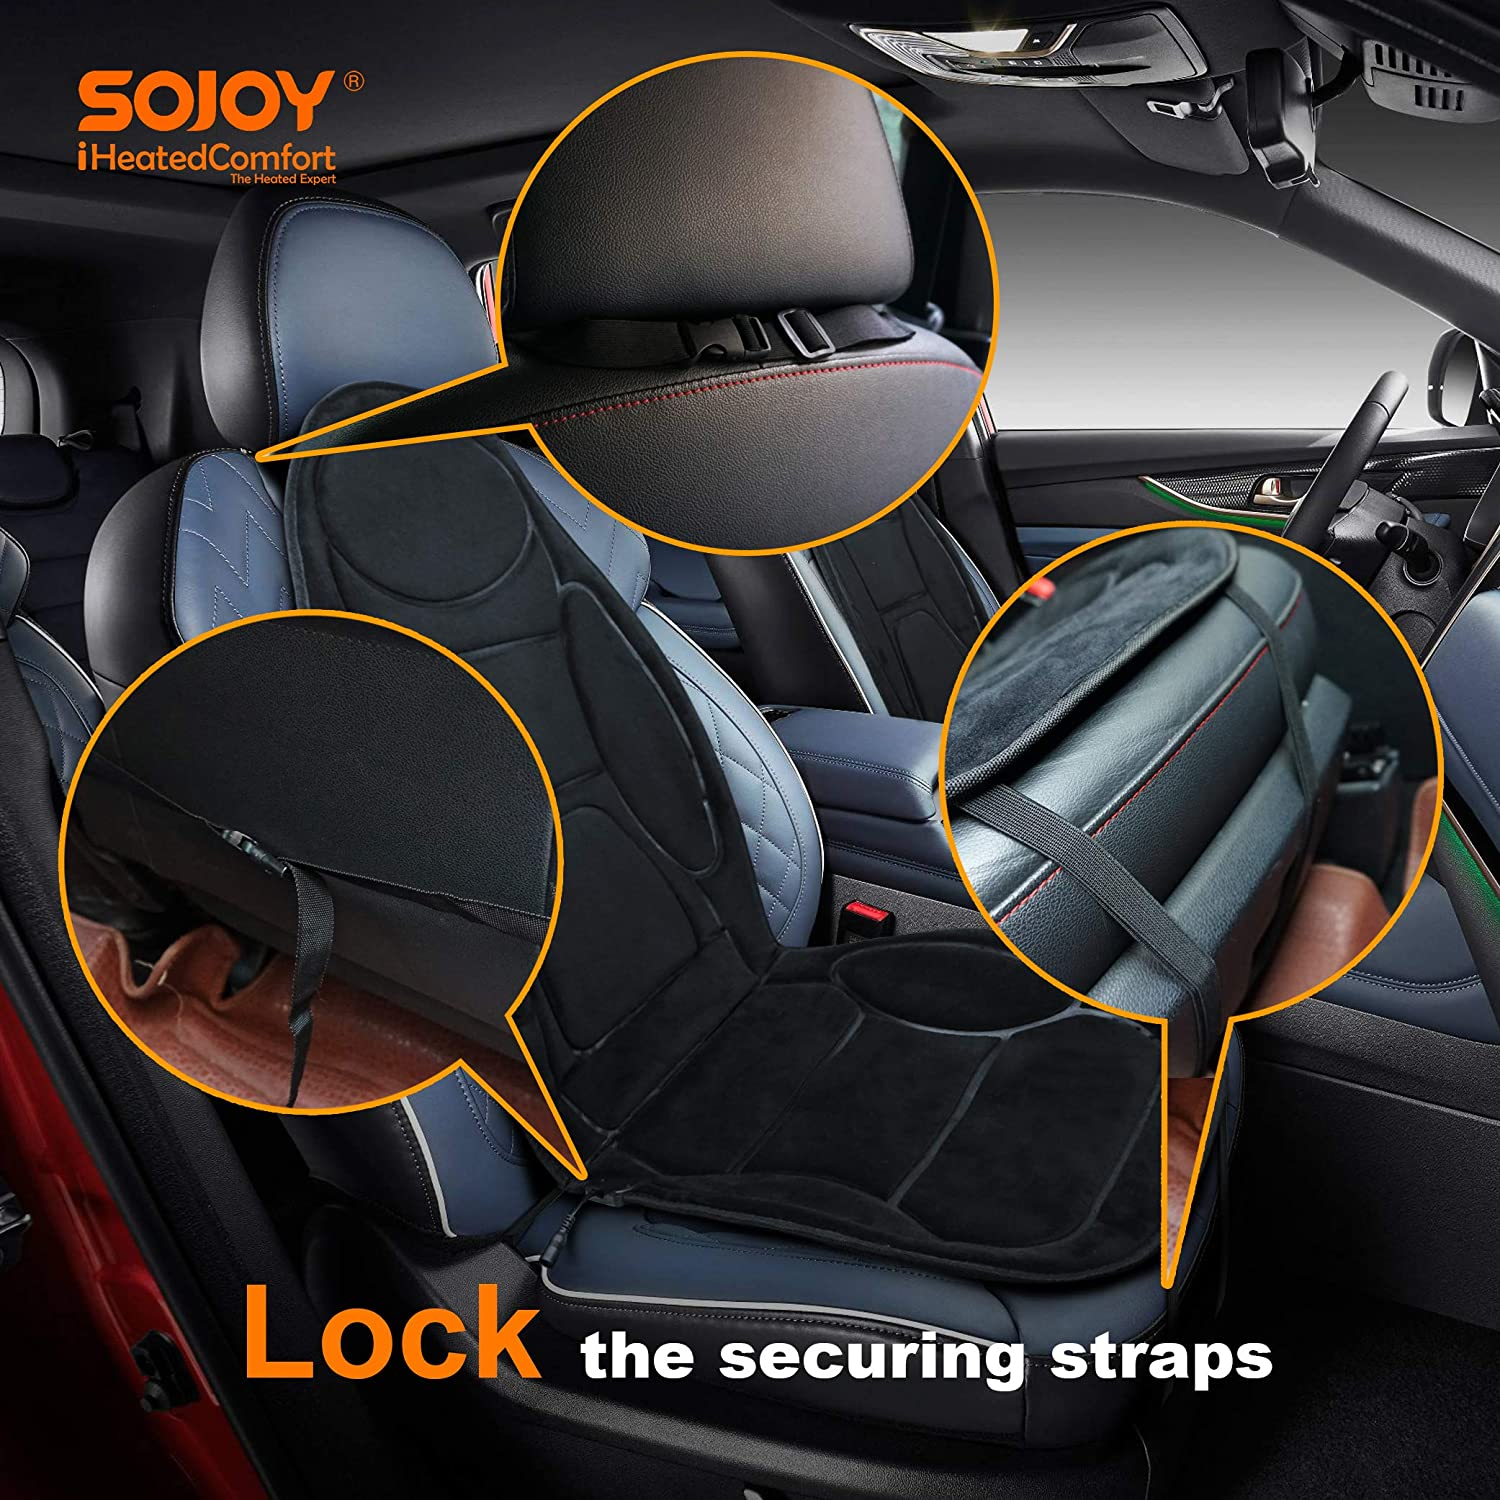 Color Black Sojoy /12V Heated Seat Cushion Made with Super Soft Velour Providing a Fast Warming Controller and Equipped with a 45 Minutes Heating Timer for a Safety Operation SJ115RO54